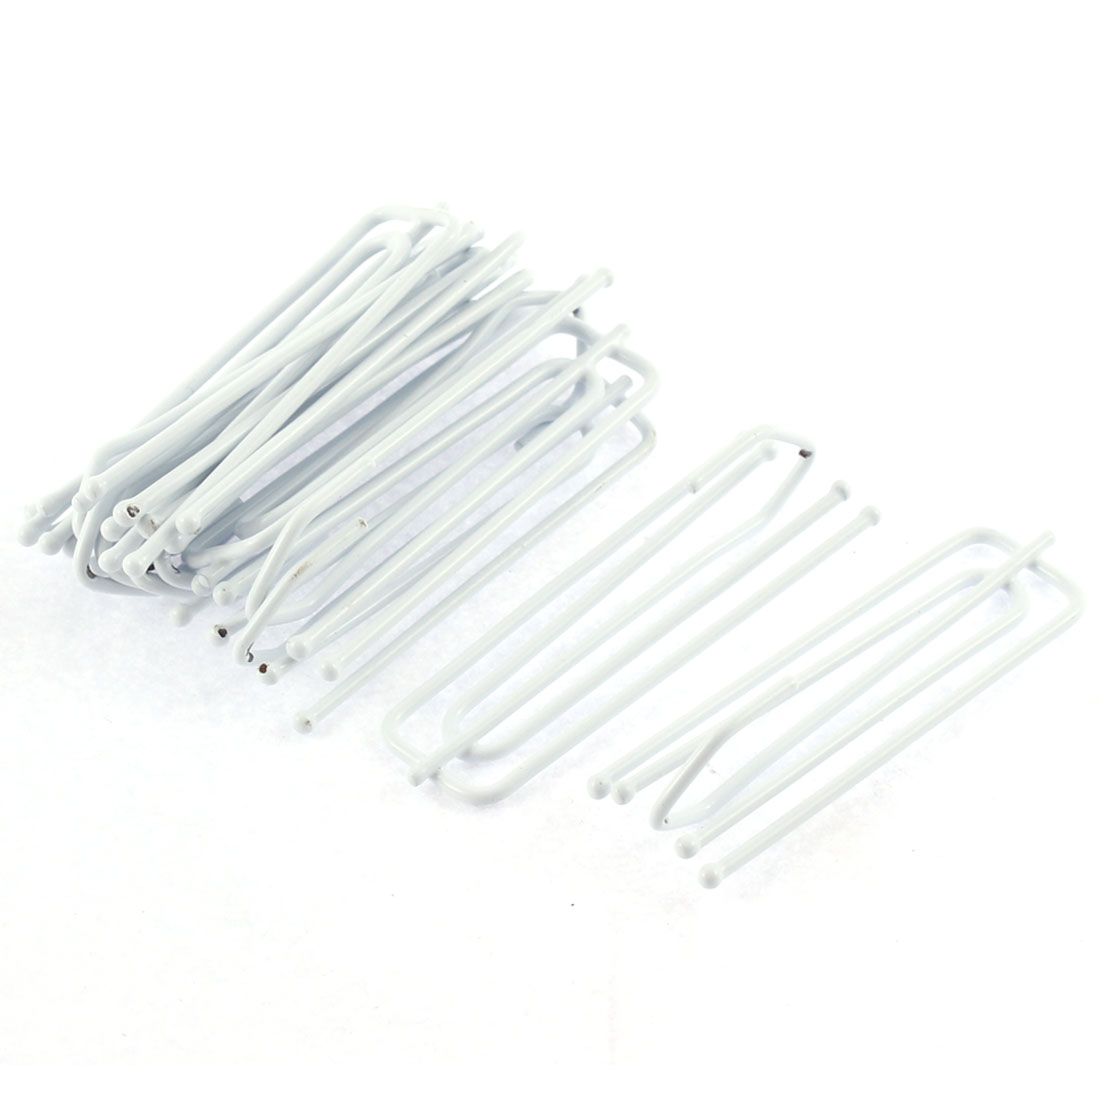 "White Metal 4 Prongs Pinch Pleat Drapes Curtain Hooks 2.8"" 10Pcs"